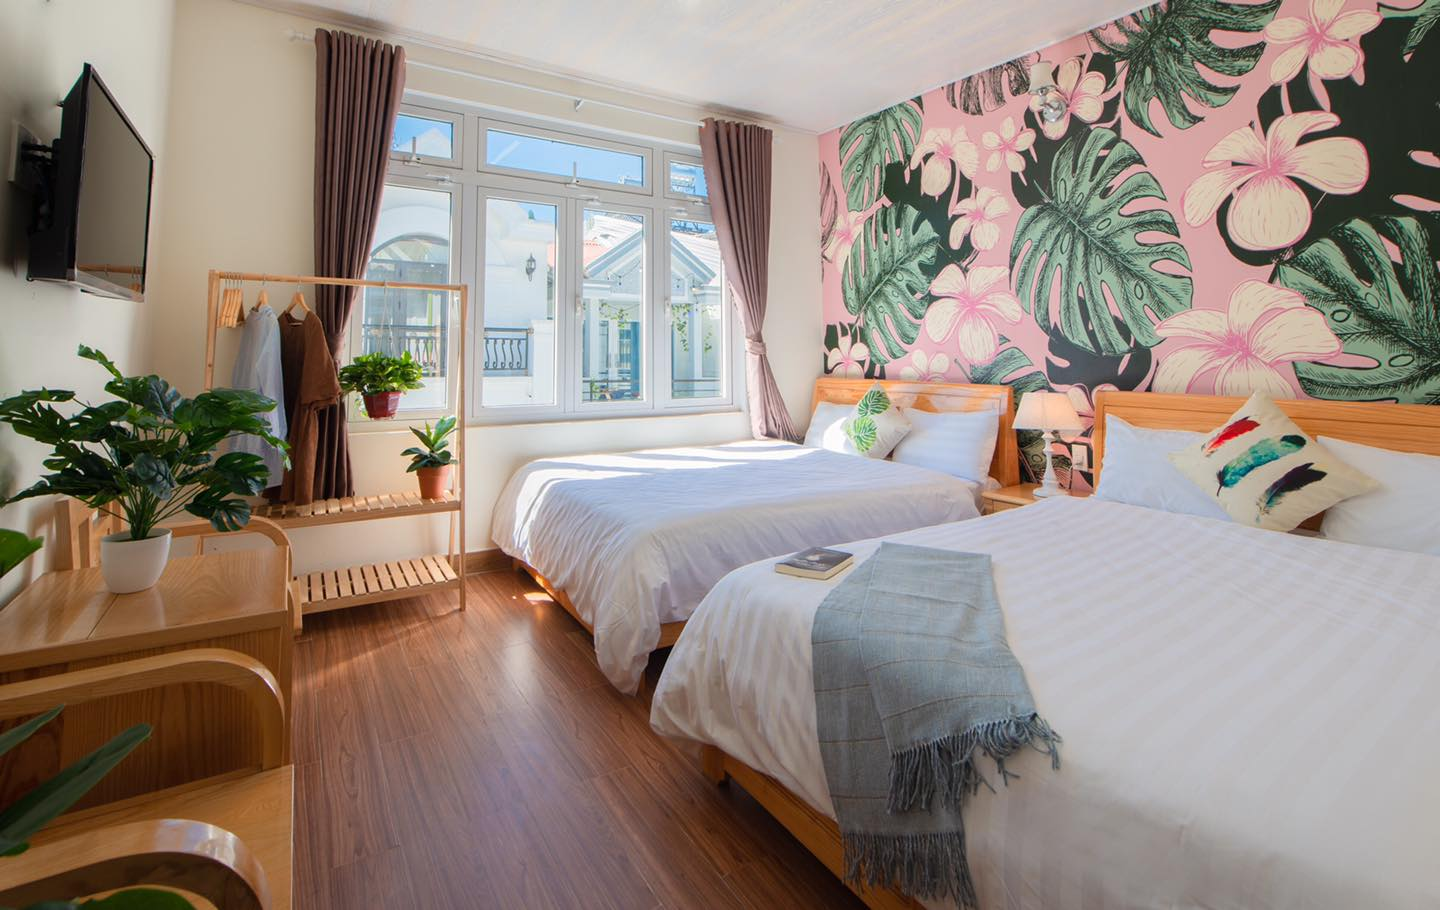 Image of a pink palm themed room at Moc Thach Hostel in Da Lat, Vietnam